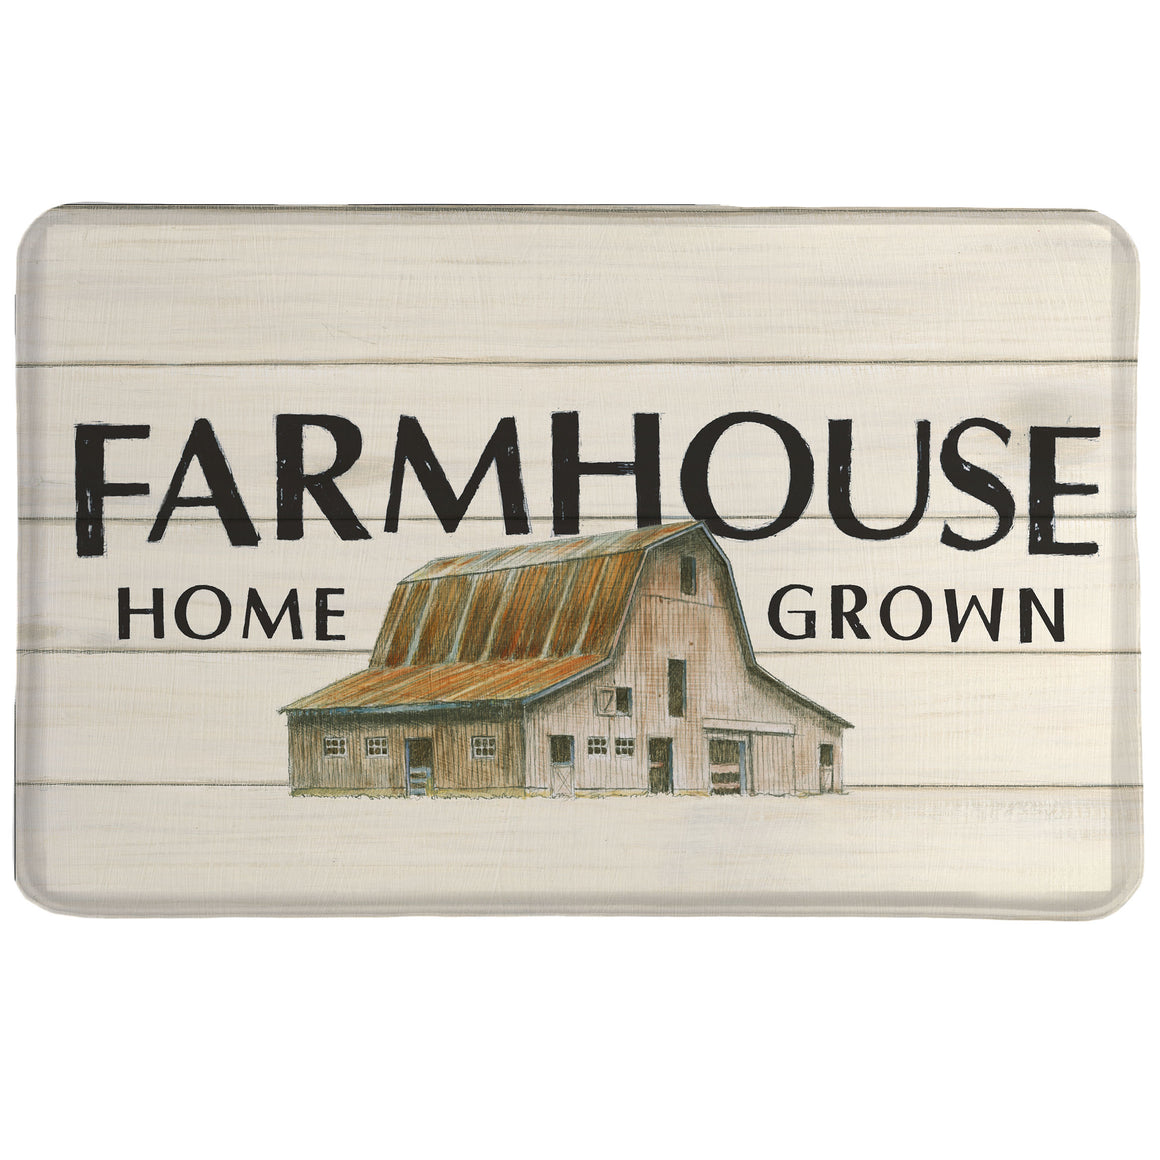 Farm Home Grown Memory Foam Rug portrays an artist painting of a barn over a distressed wood panel background